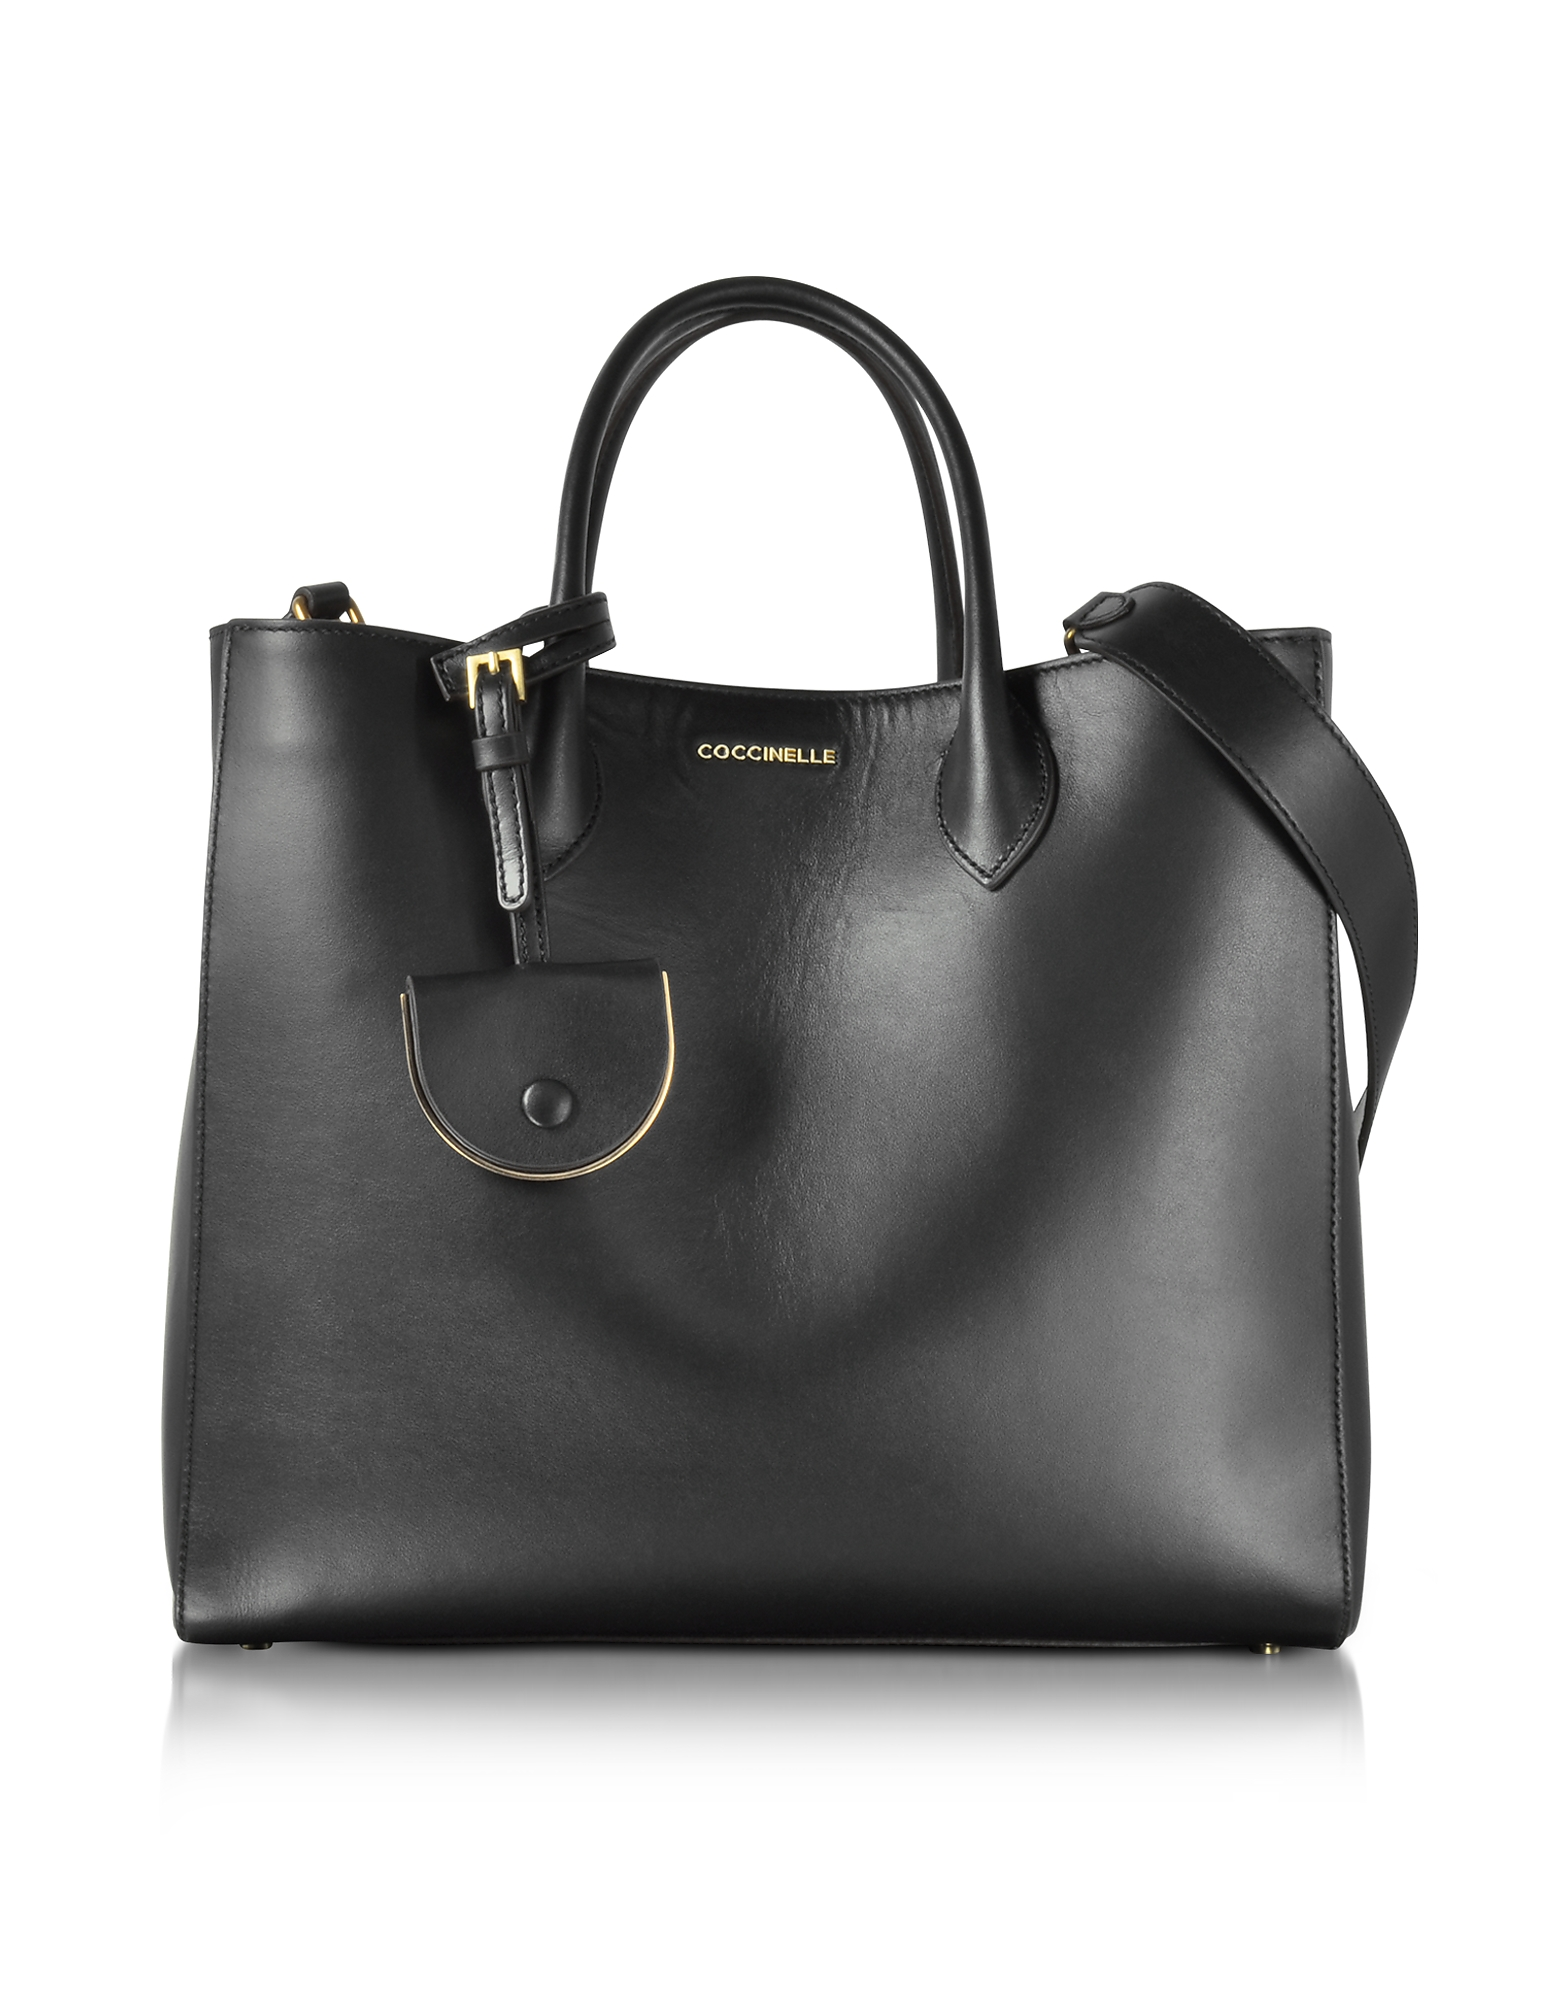 Coccinelle Handbags, Jamila Smooth Leather Tote